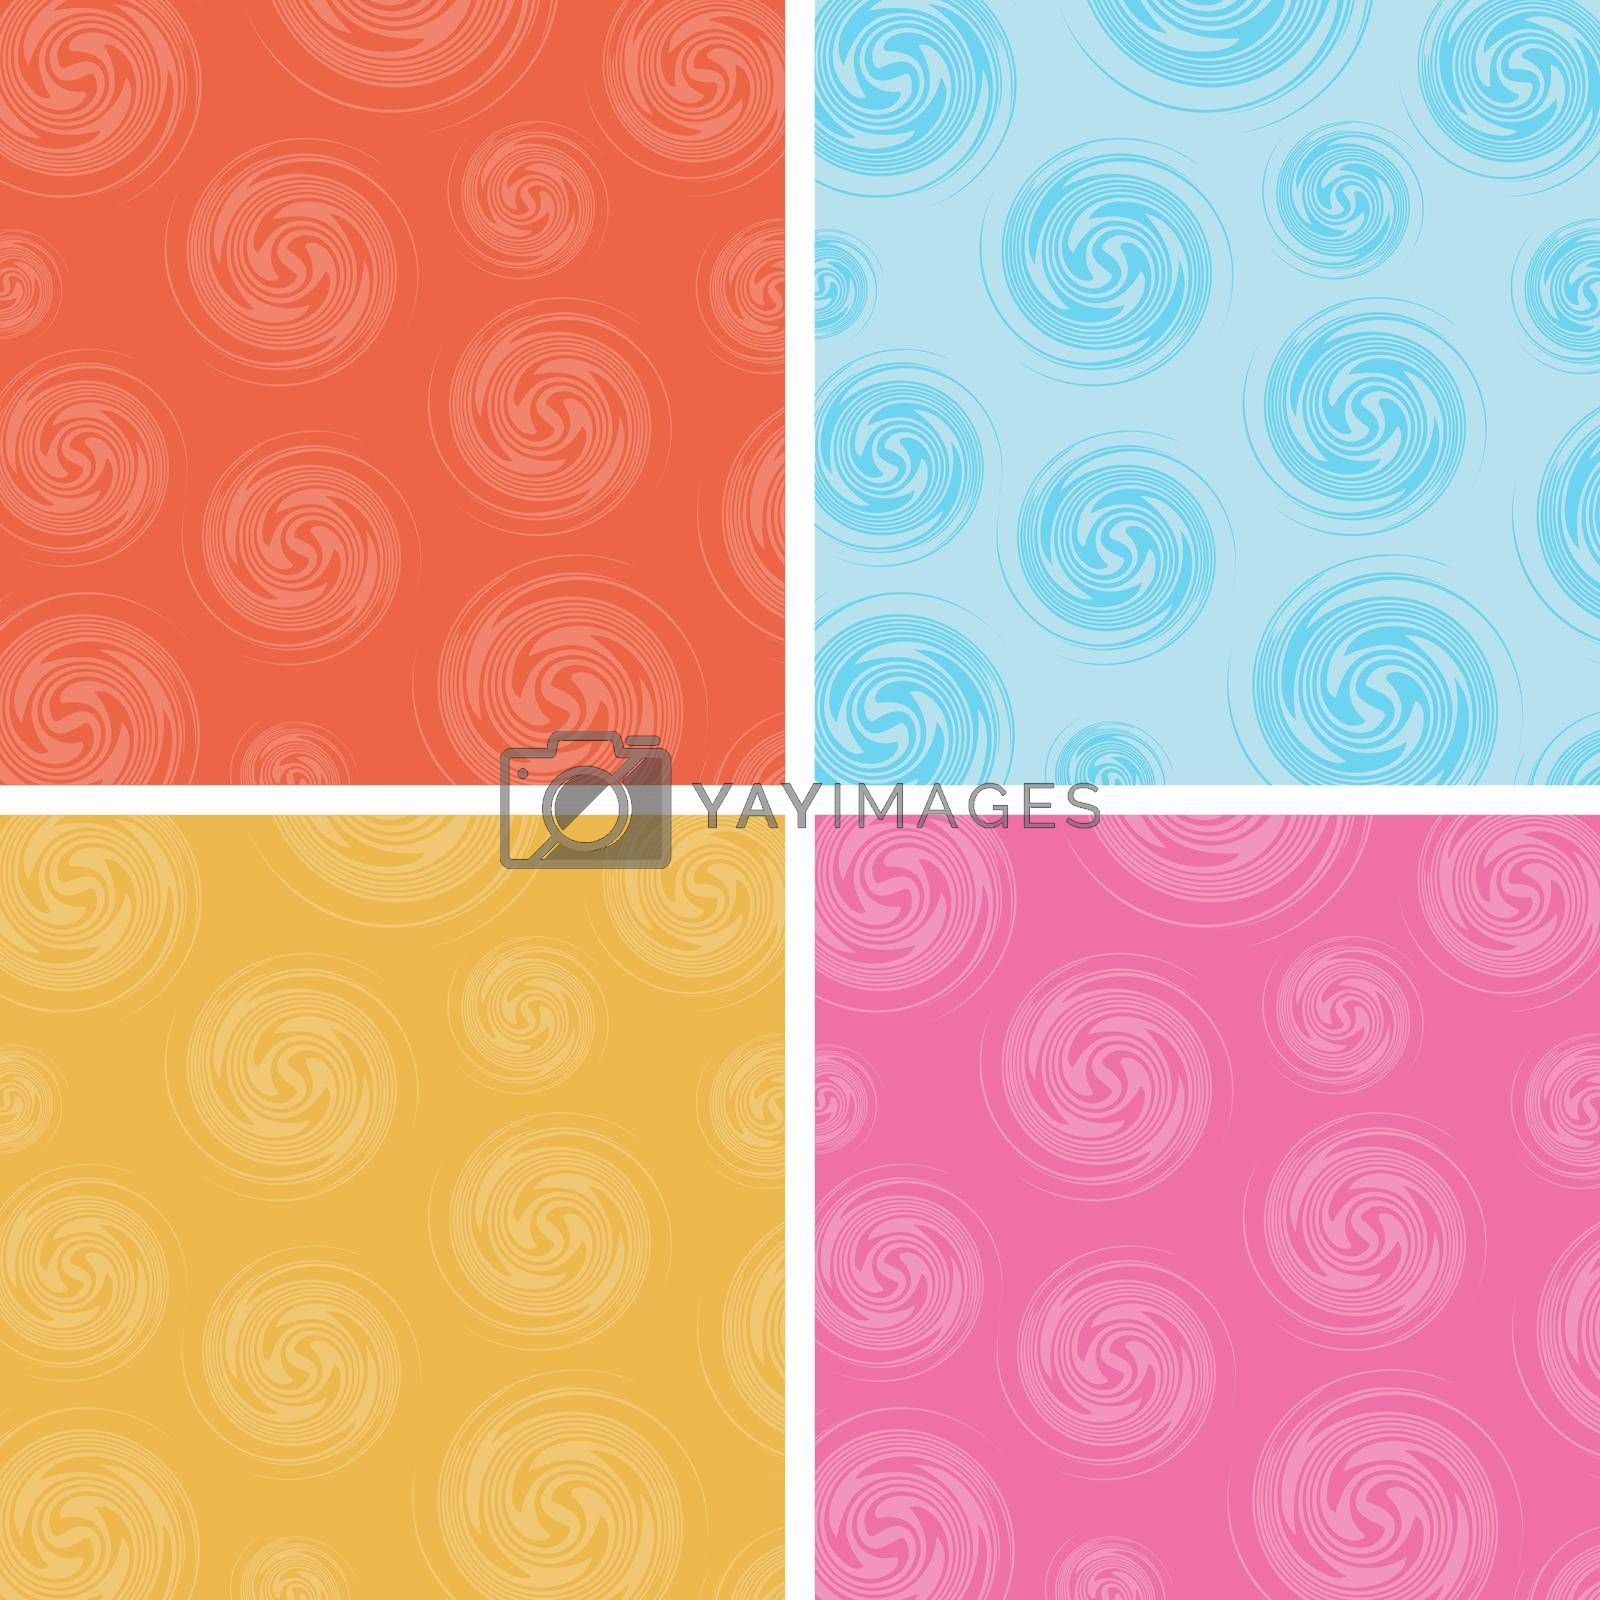 Royalty free image of Set of abstract circles spin pattern multicolor background by phochi